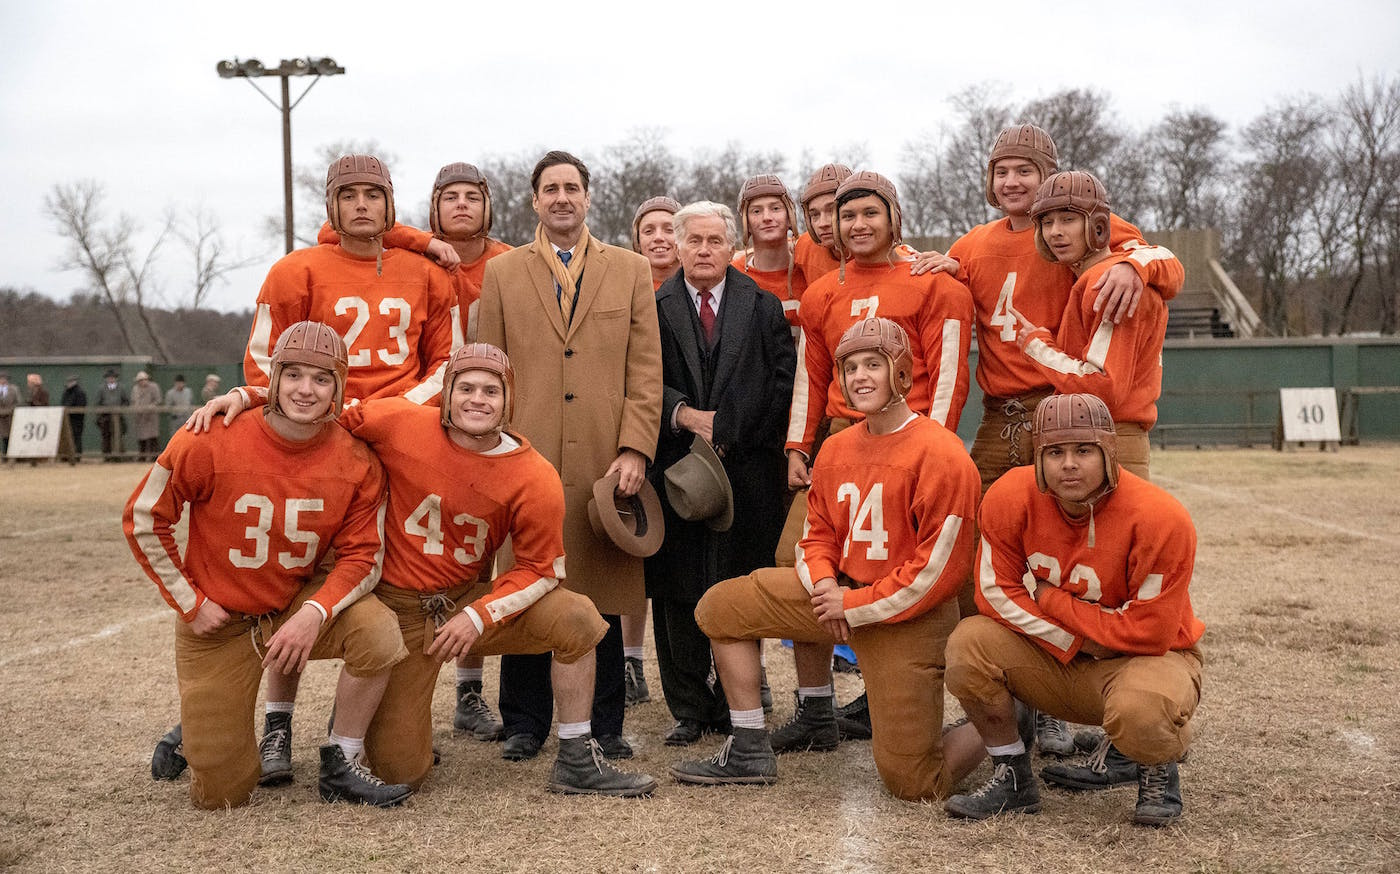 12 Mighty Orphans, which is based on a true story, seems almost foolproof. But it fumbles an awful lot on its way to the goalpost.